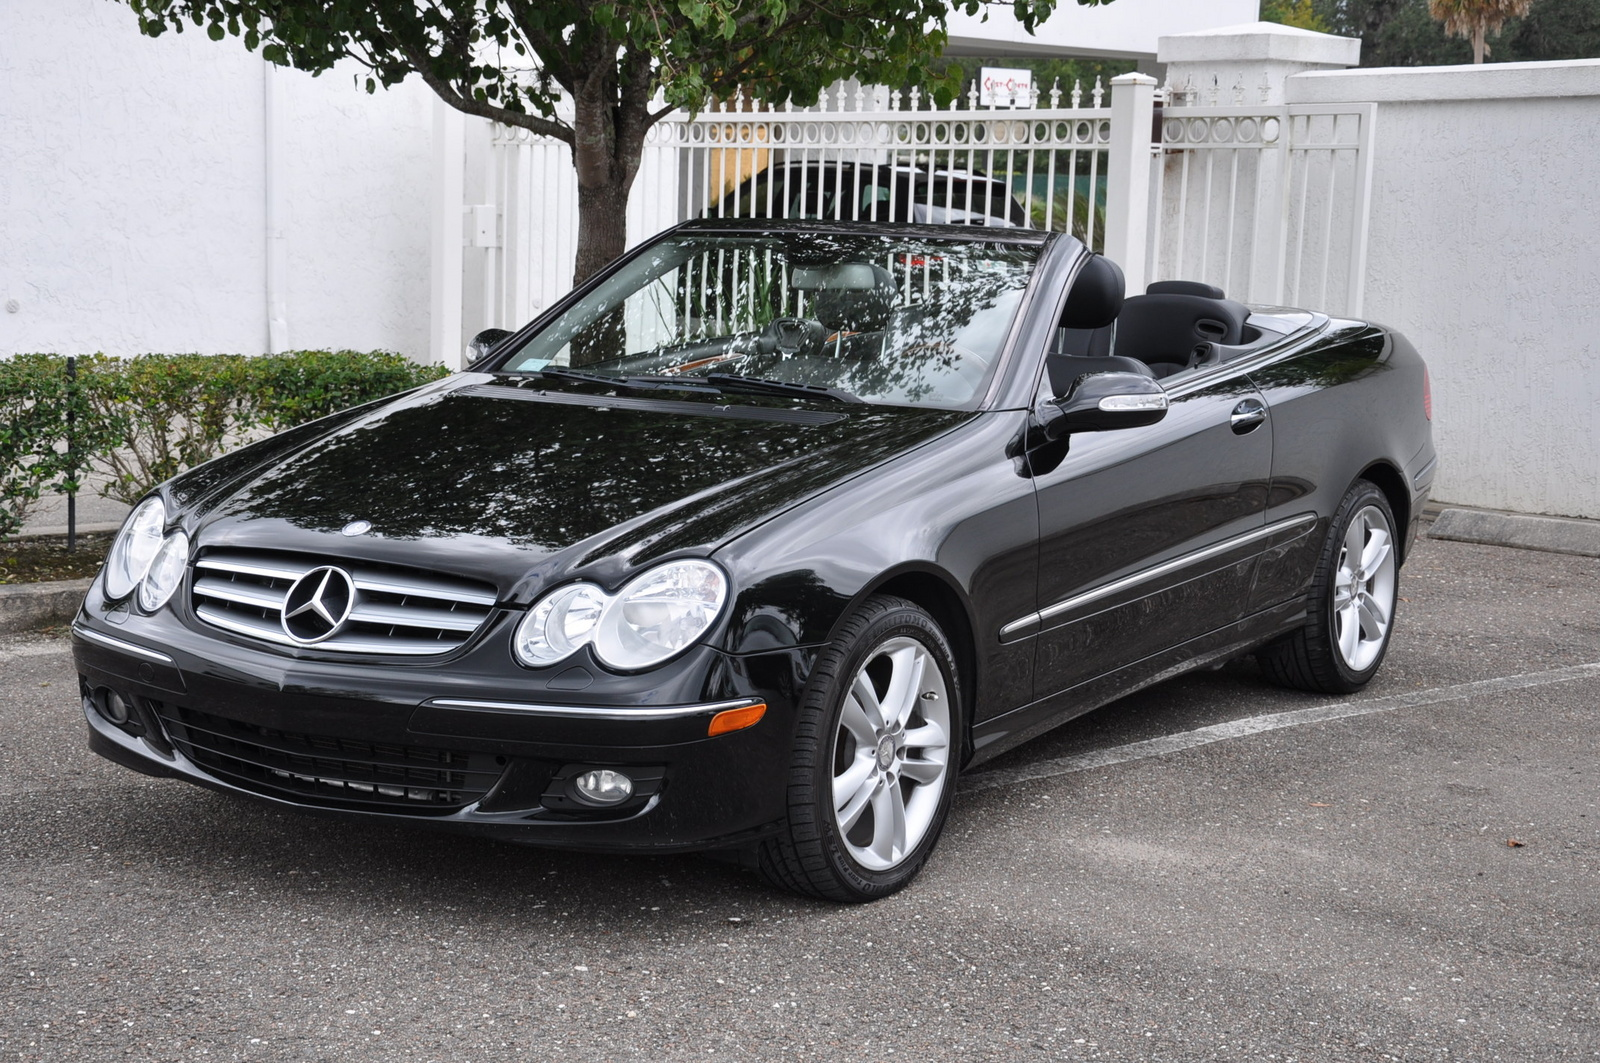 Mercedes-Benz CLK Cabrio Sport Edition photo 13